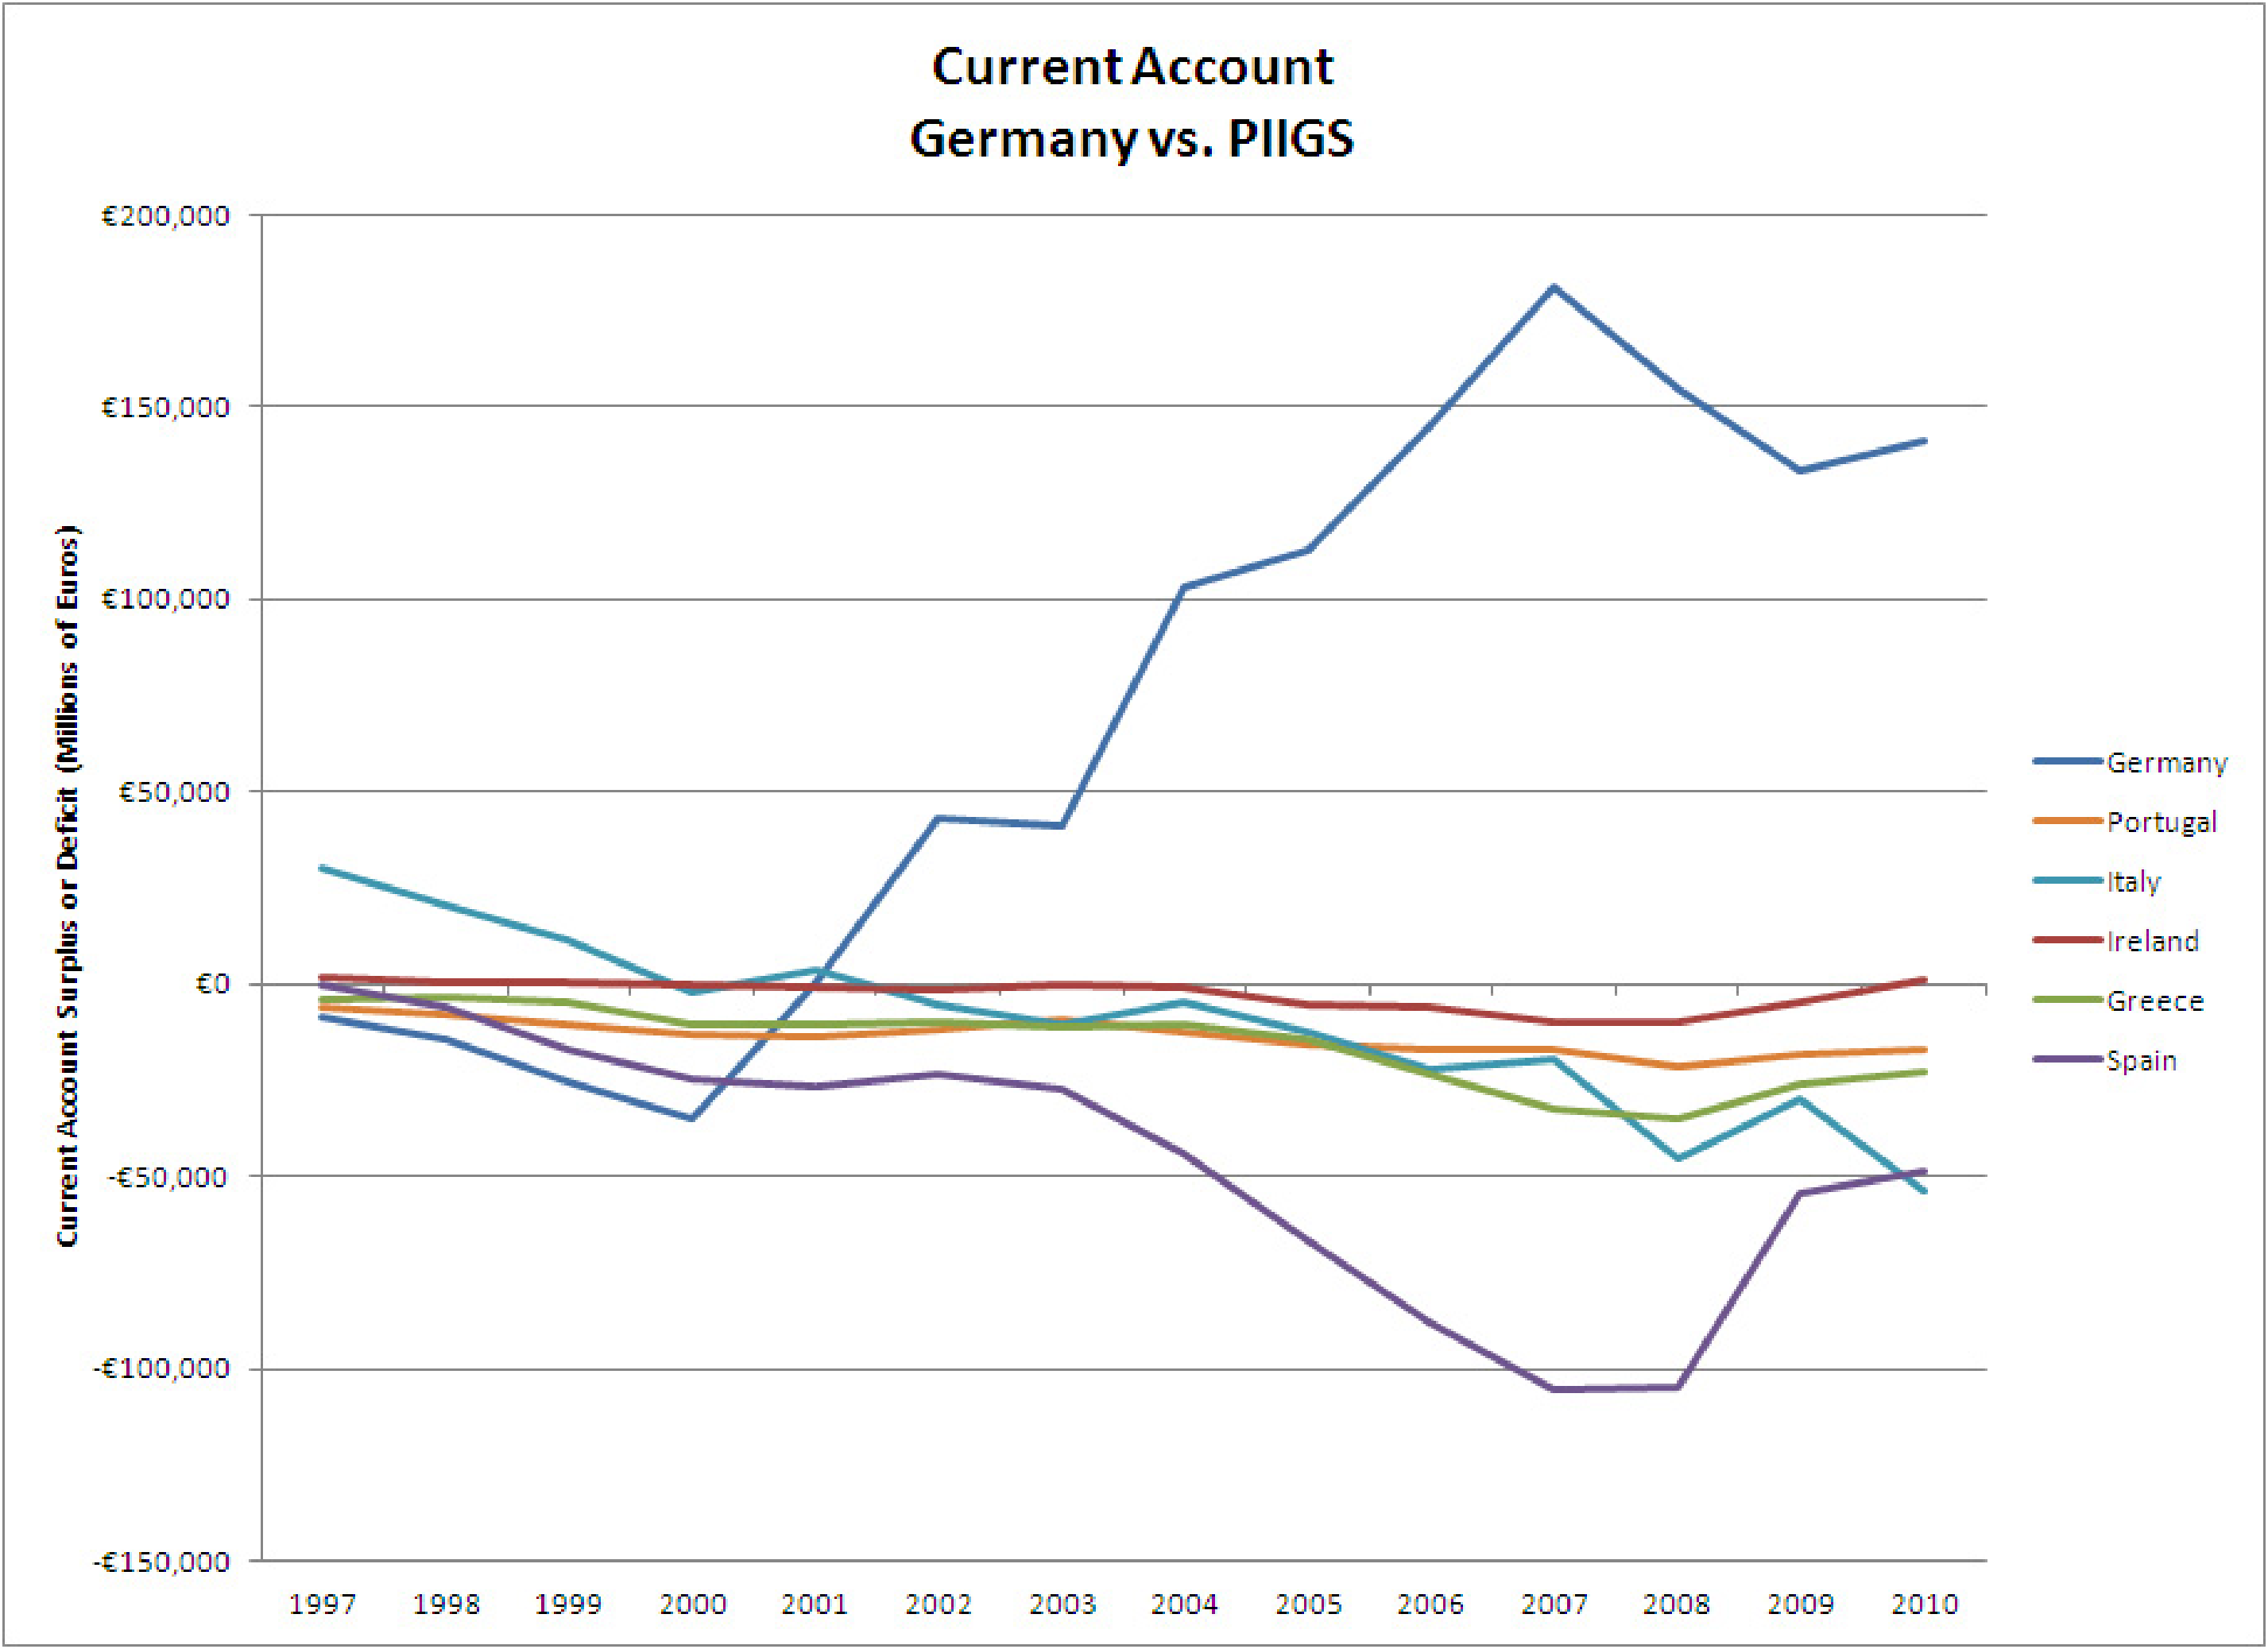 Current Account Germany vs. PIIGS